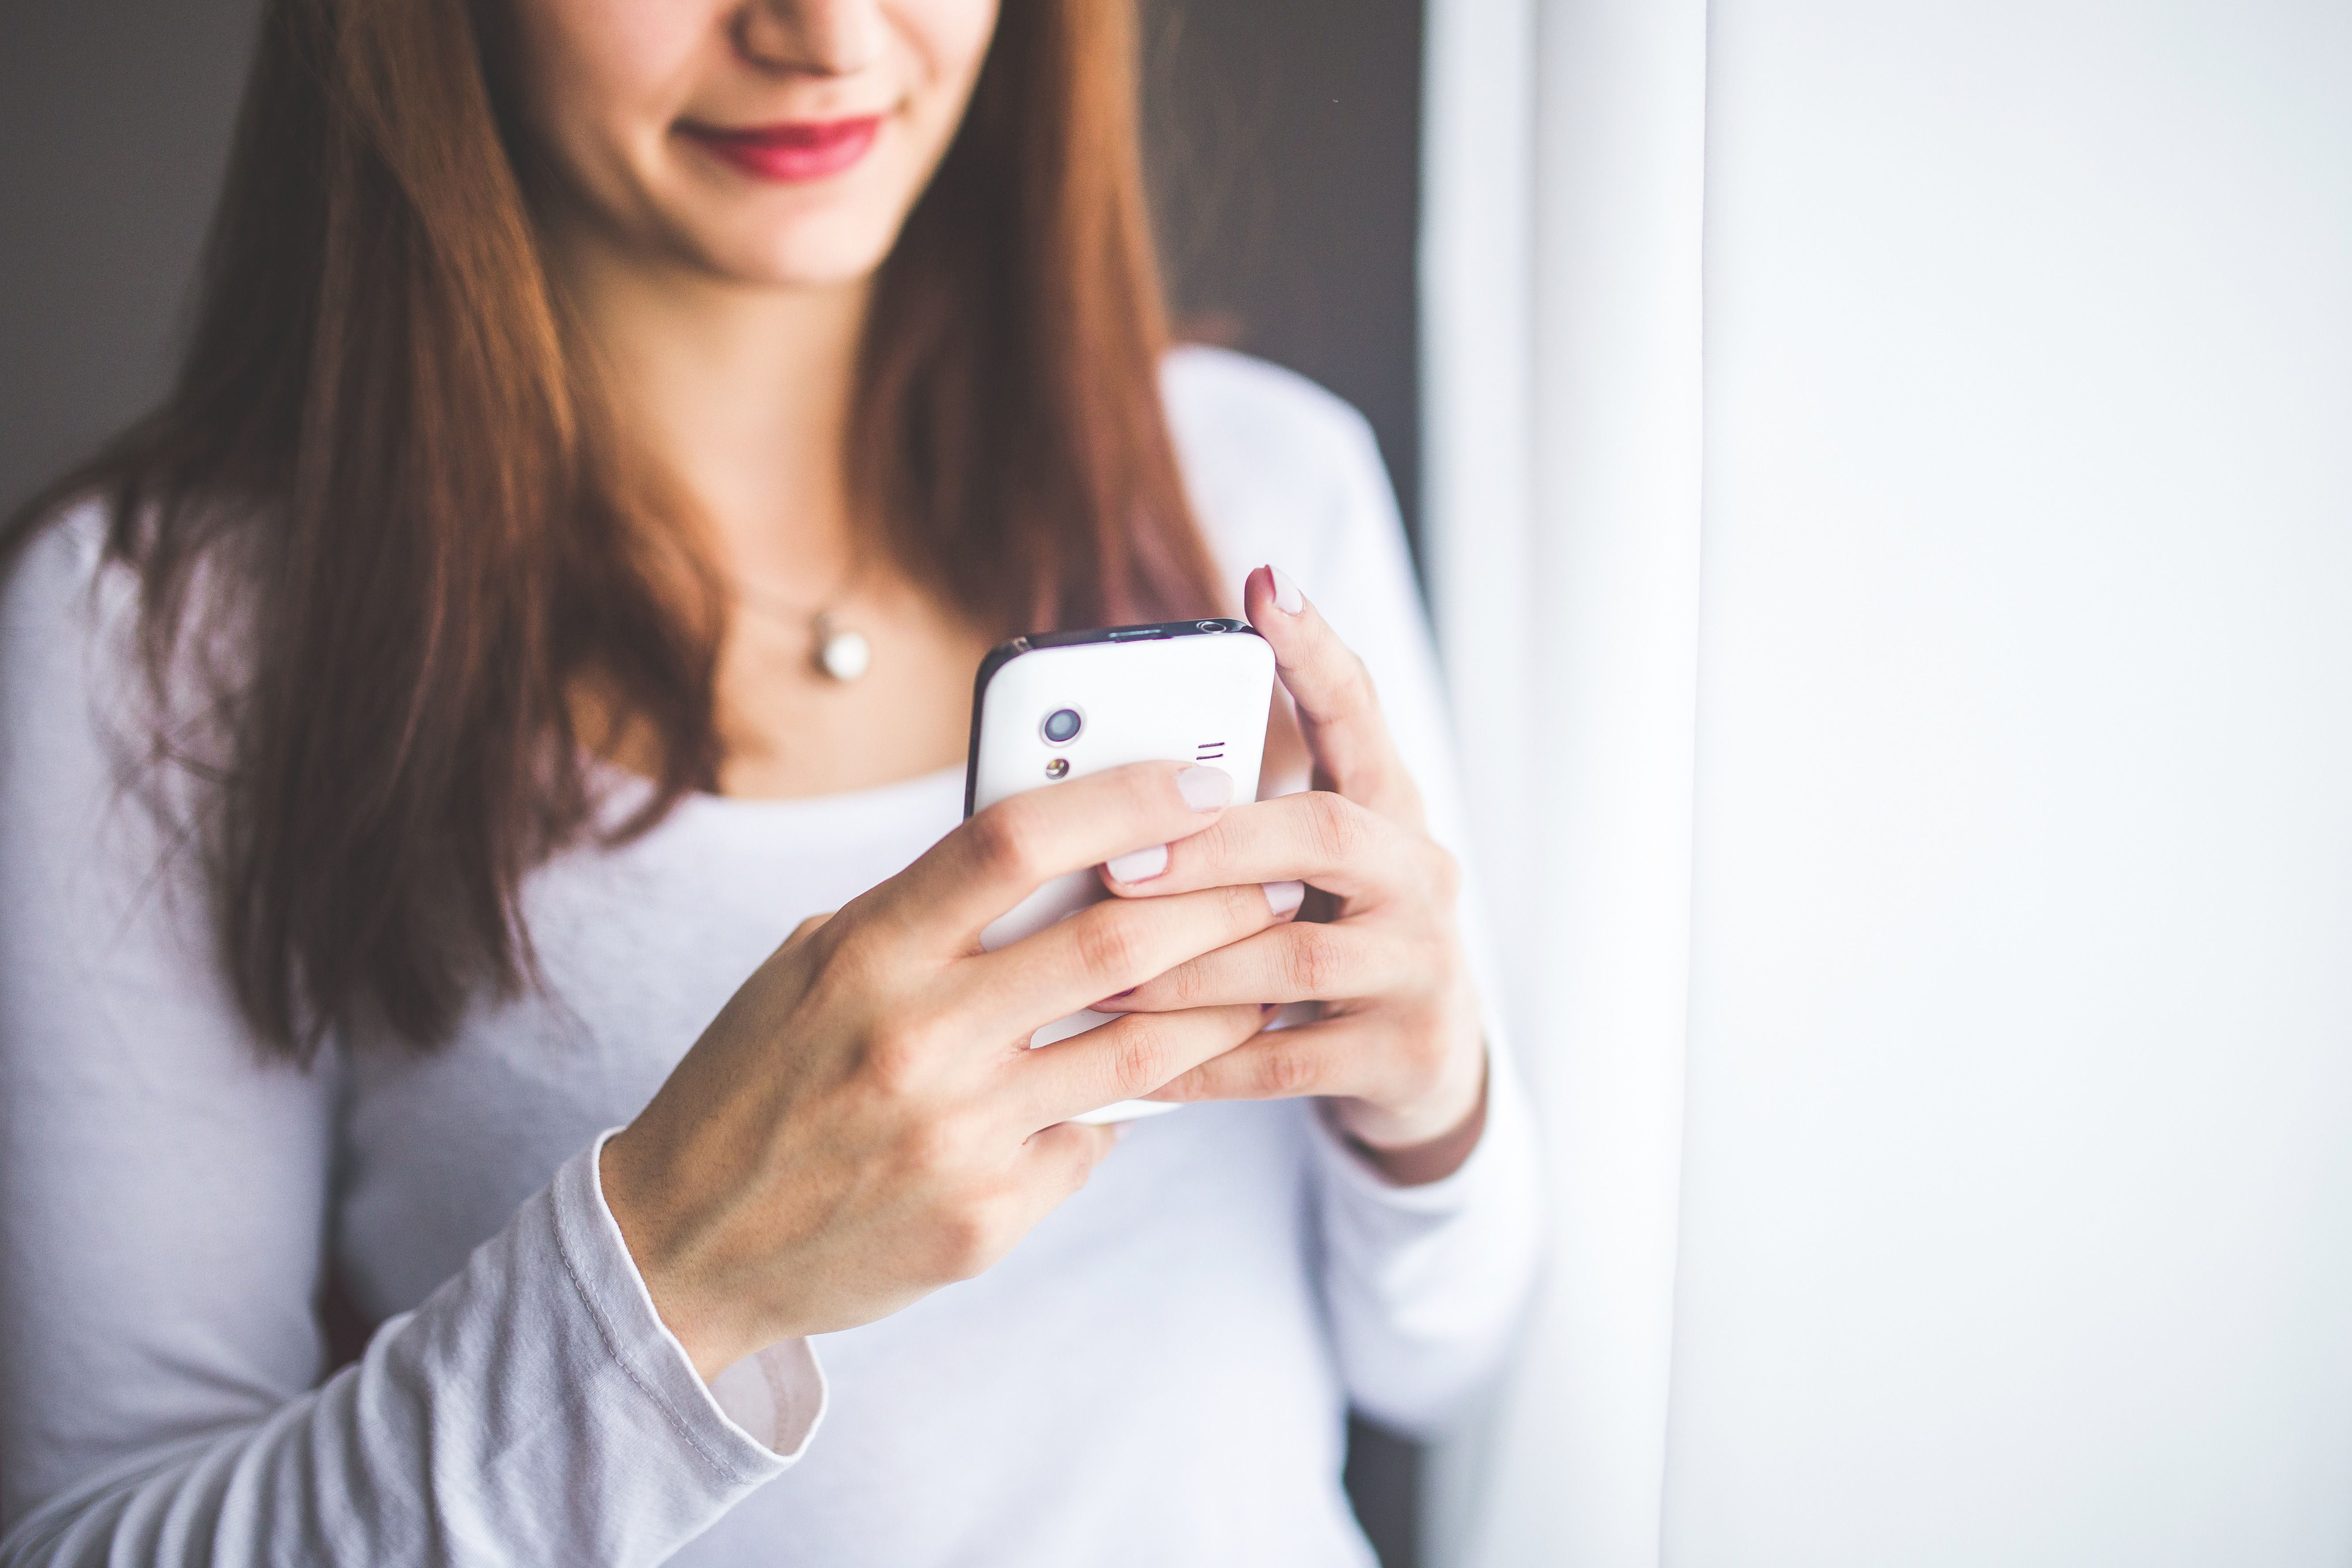 Moving from online dating to texting